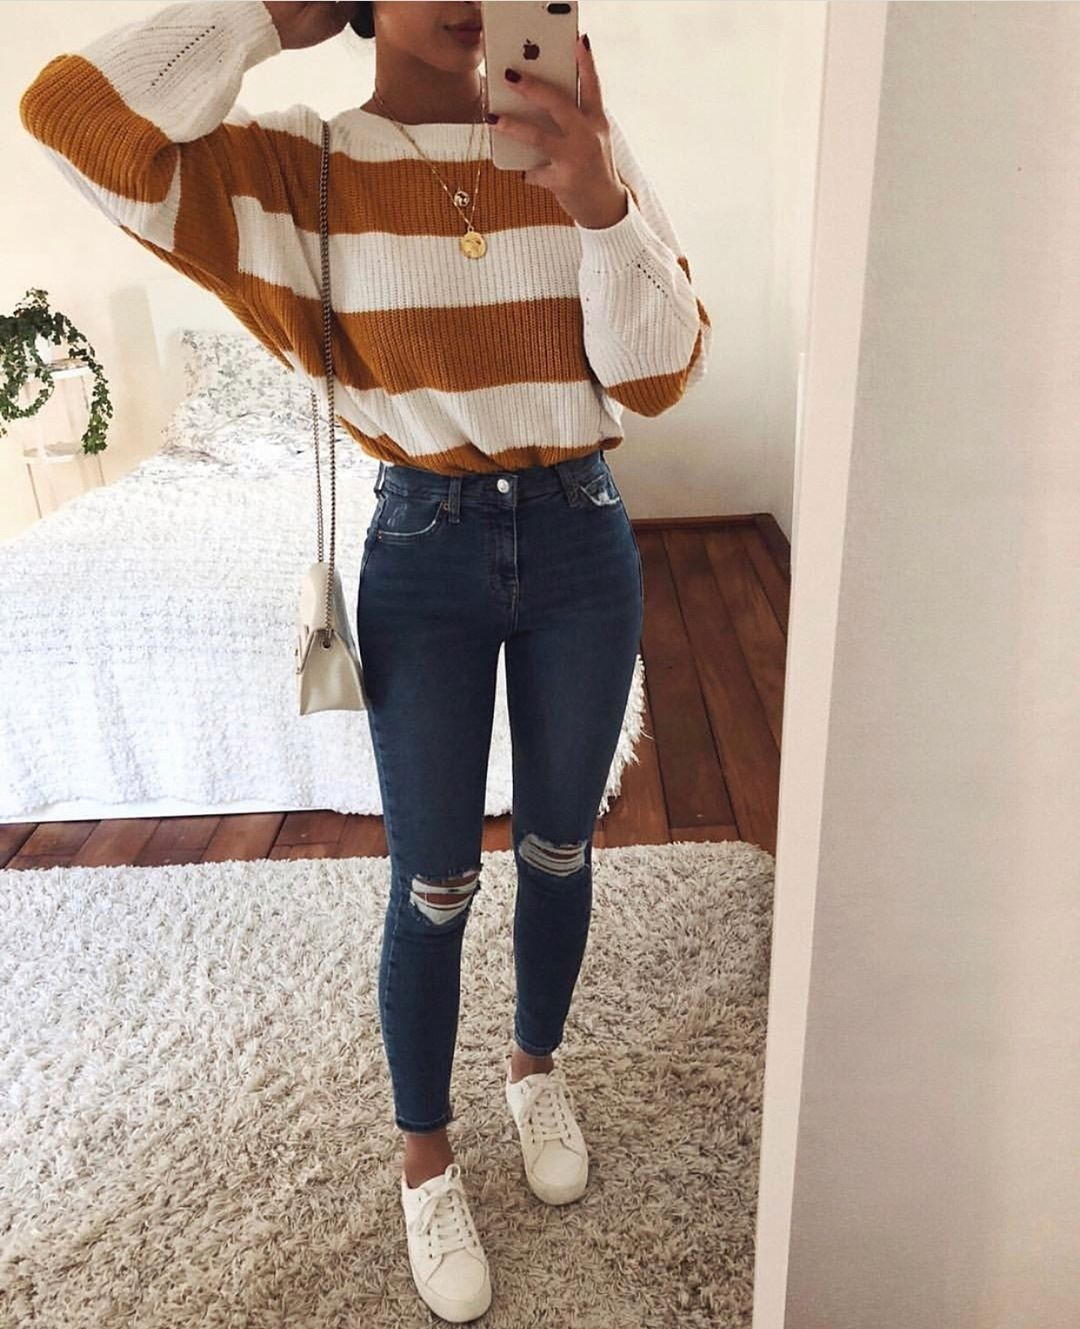 Cute Outfits For School 2019 : outfits, school, Philips, Outfits, Casual, Outfits,